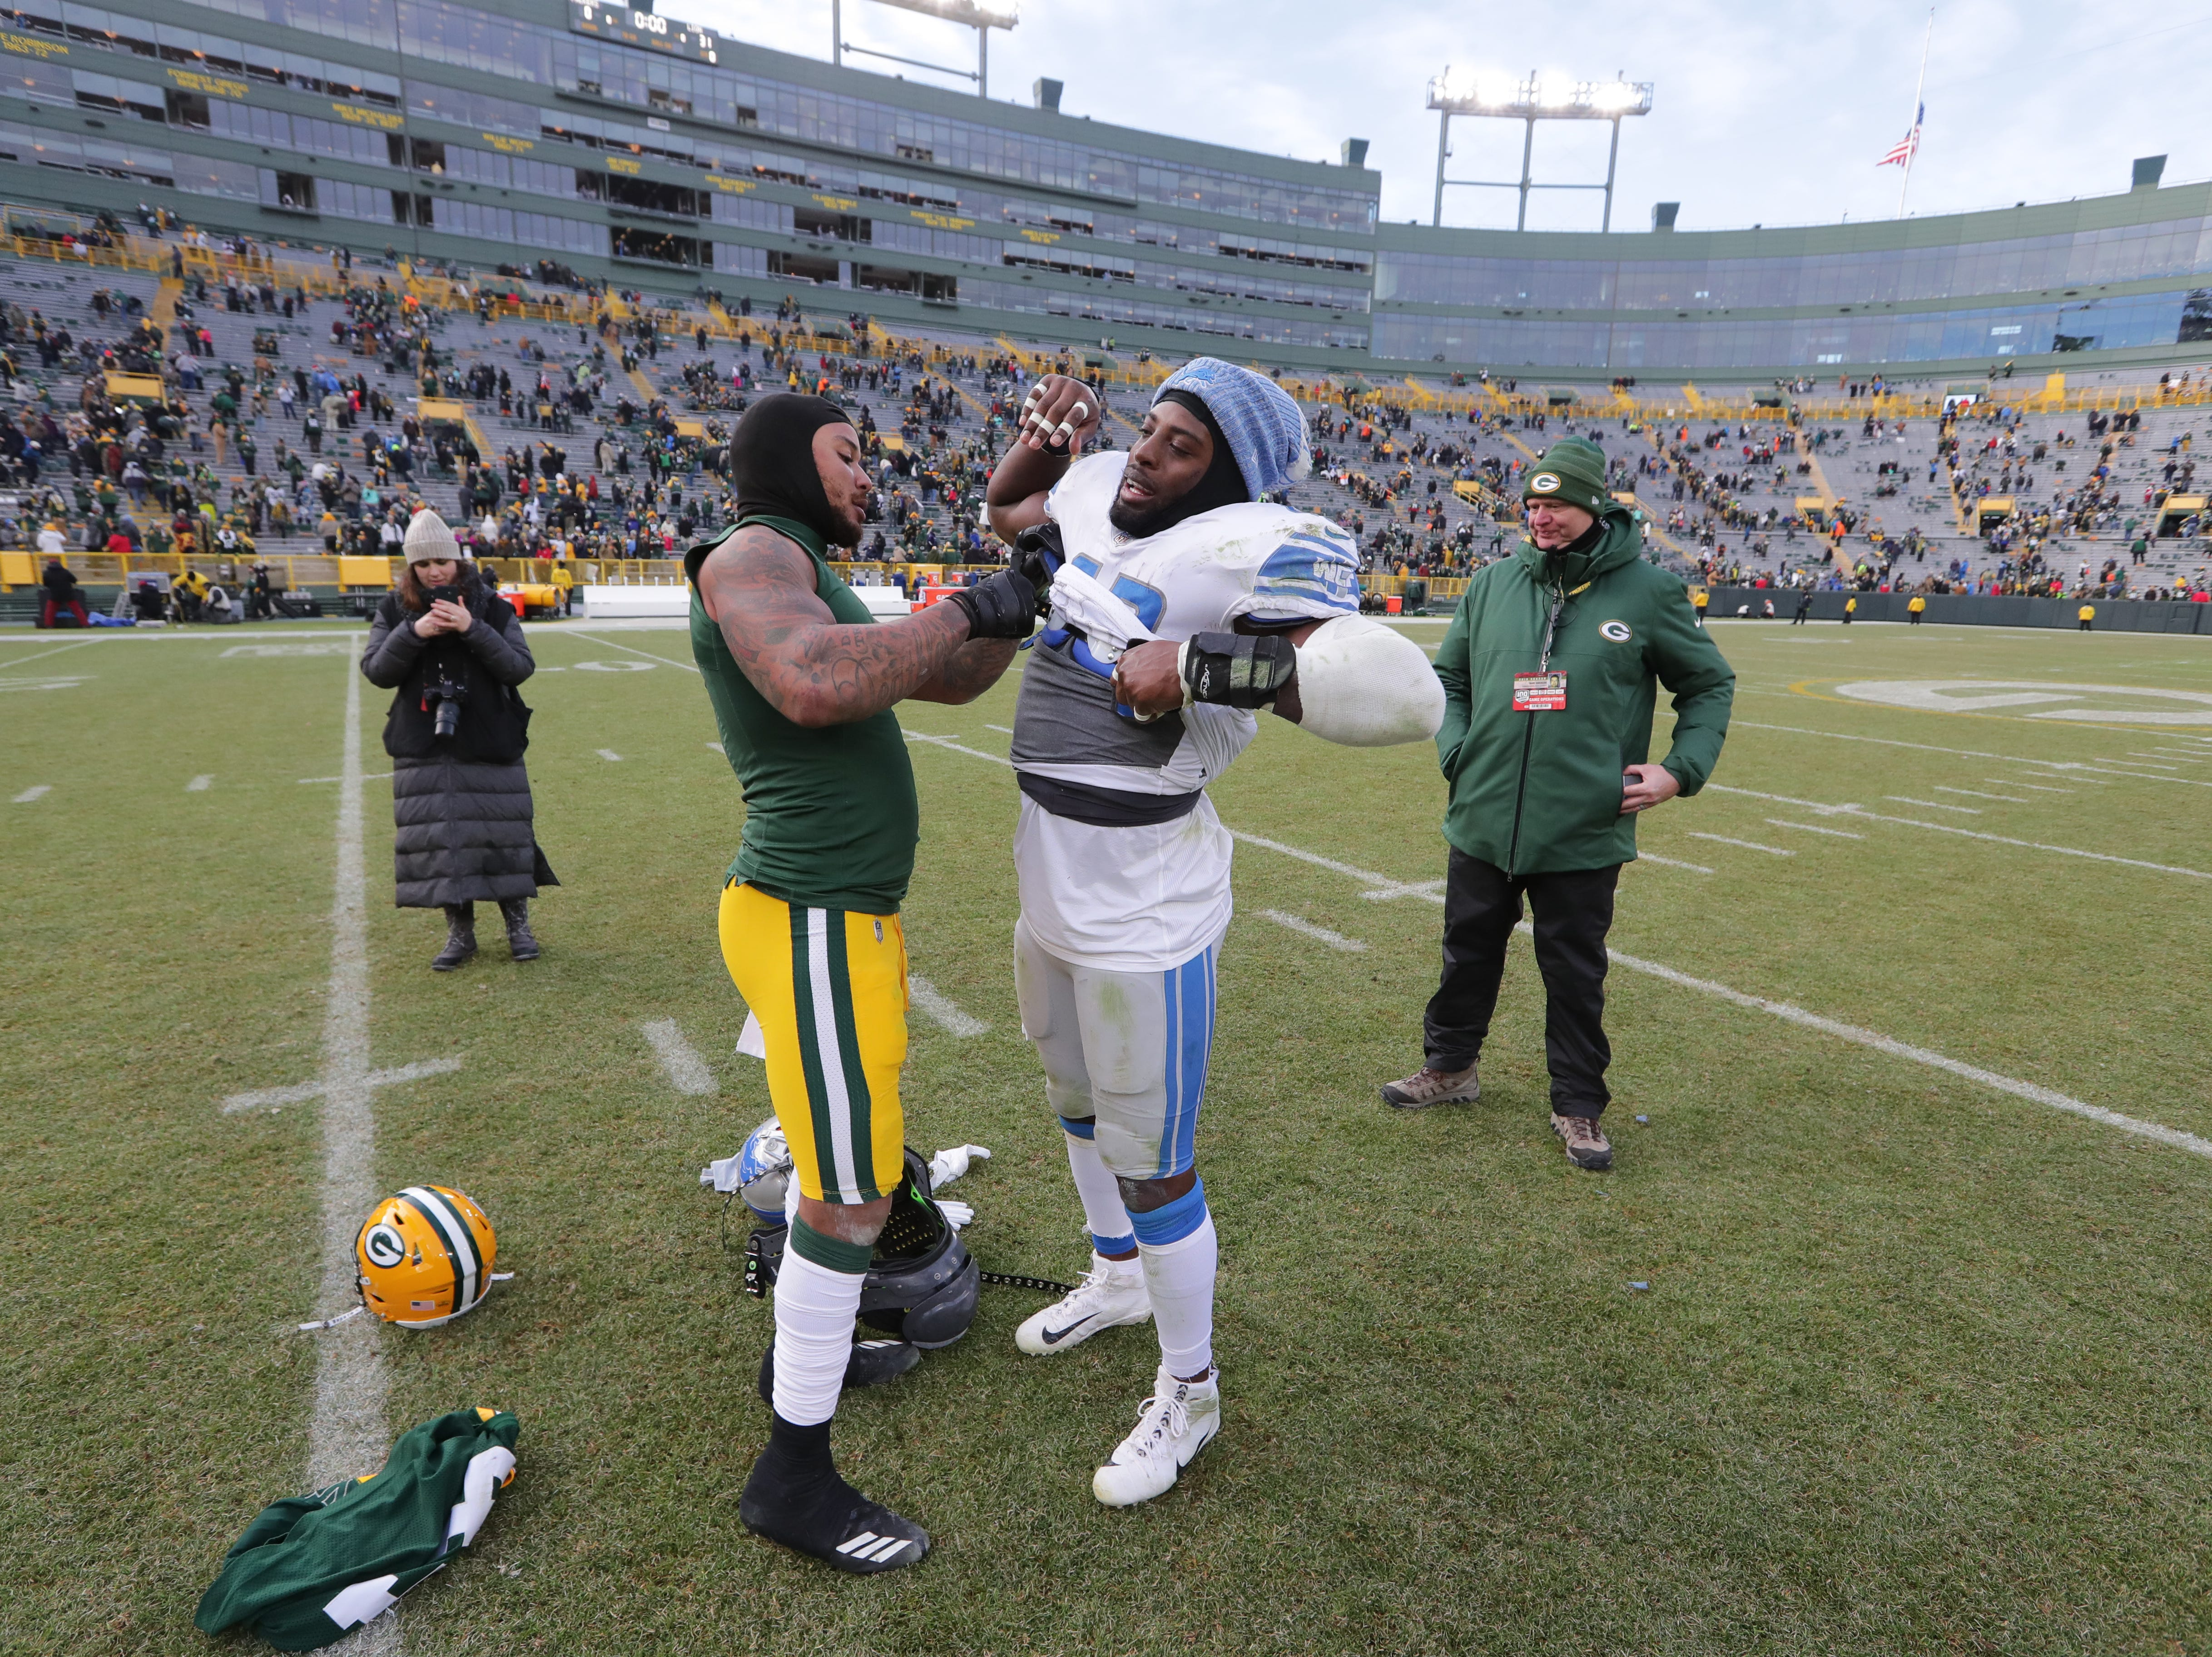 Green Bay Packers inside linebacker Antonio Morrison (left) helps Detroit Lions middle linebacker Jarrad Davis (40) remove his jerseys so they can trade after their game Sunday, December 30, 2018 at Lambeau Field in Green Bay, Wis. The Detroit Lions beat the Green Bay Packers 31-0.  MARK HOFFMAN/MILWAUKEE JOURNAL SENTINEL